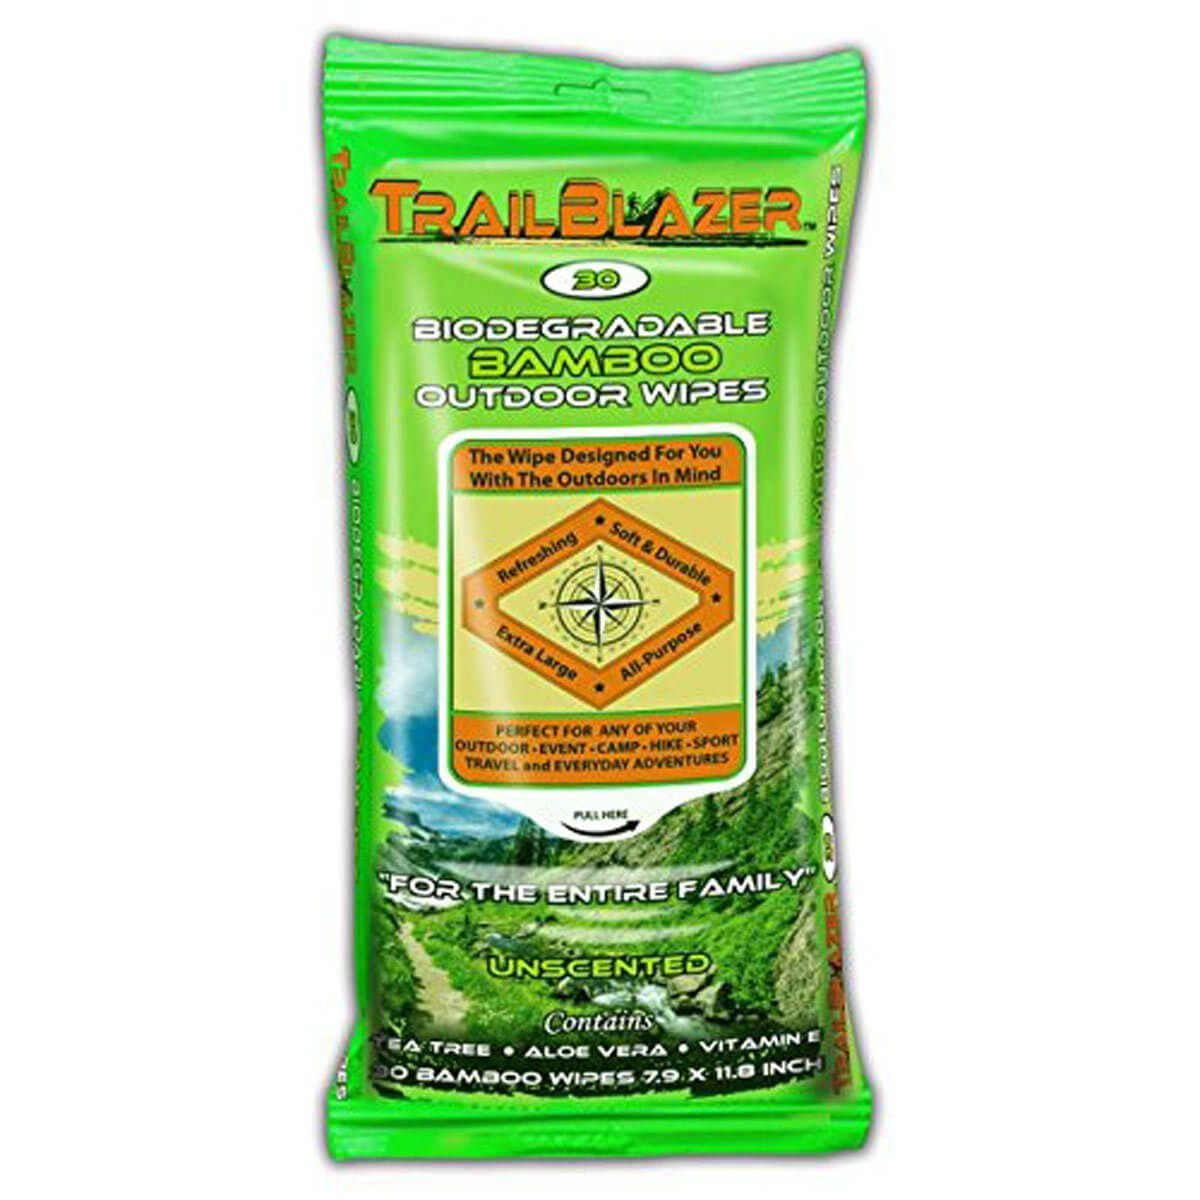 Biodegradable Bamboo camping Wipes